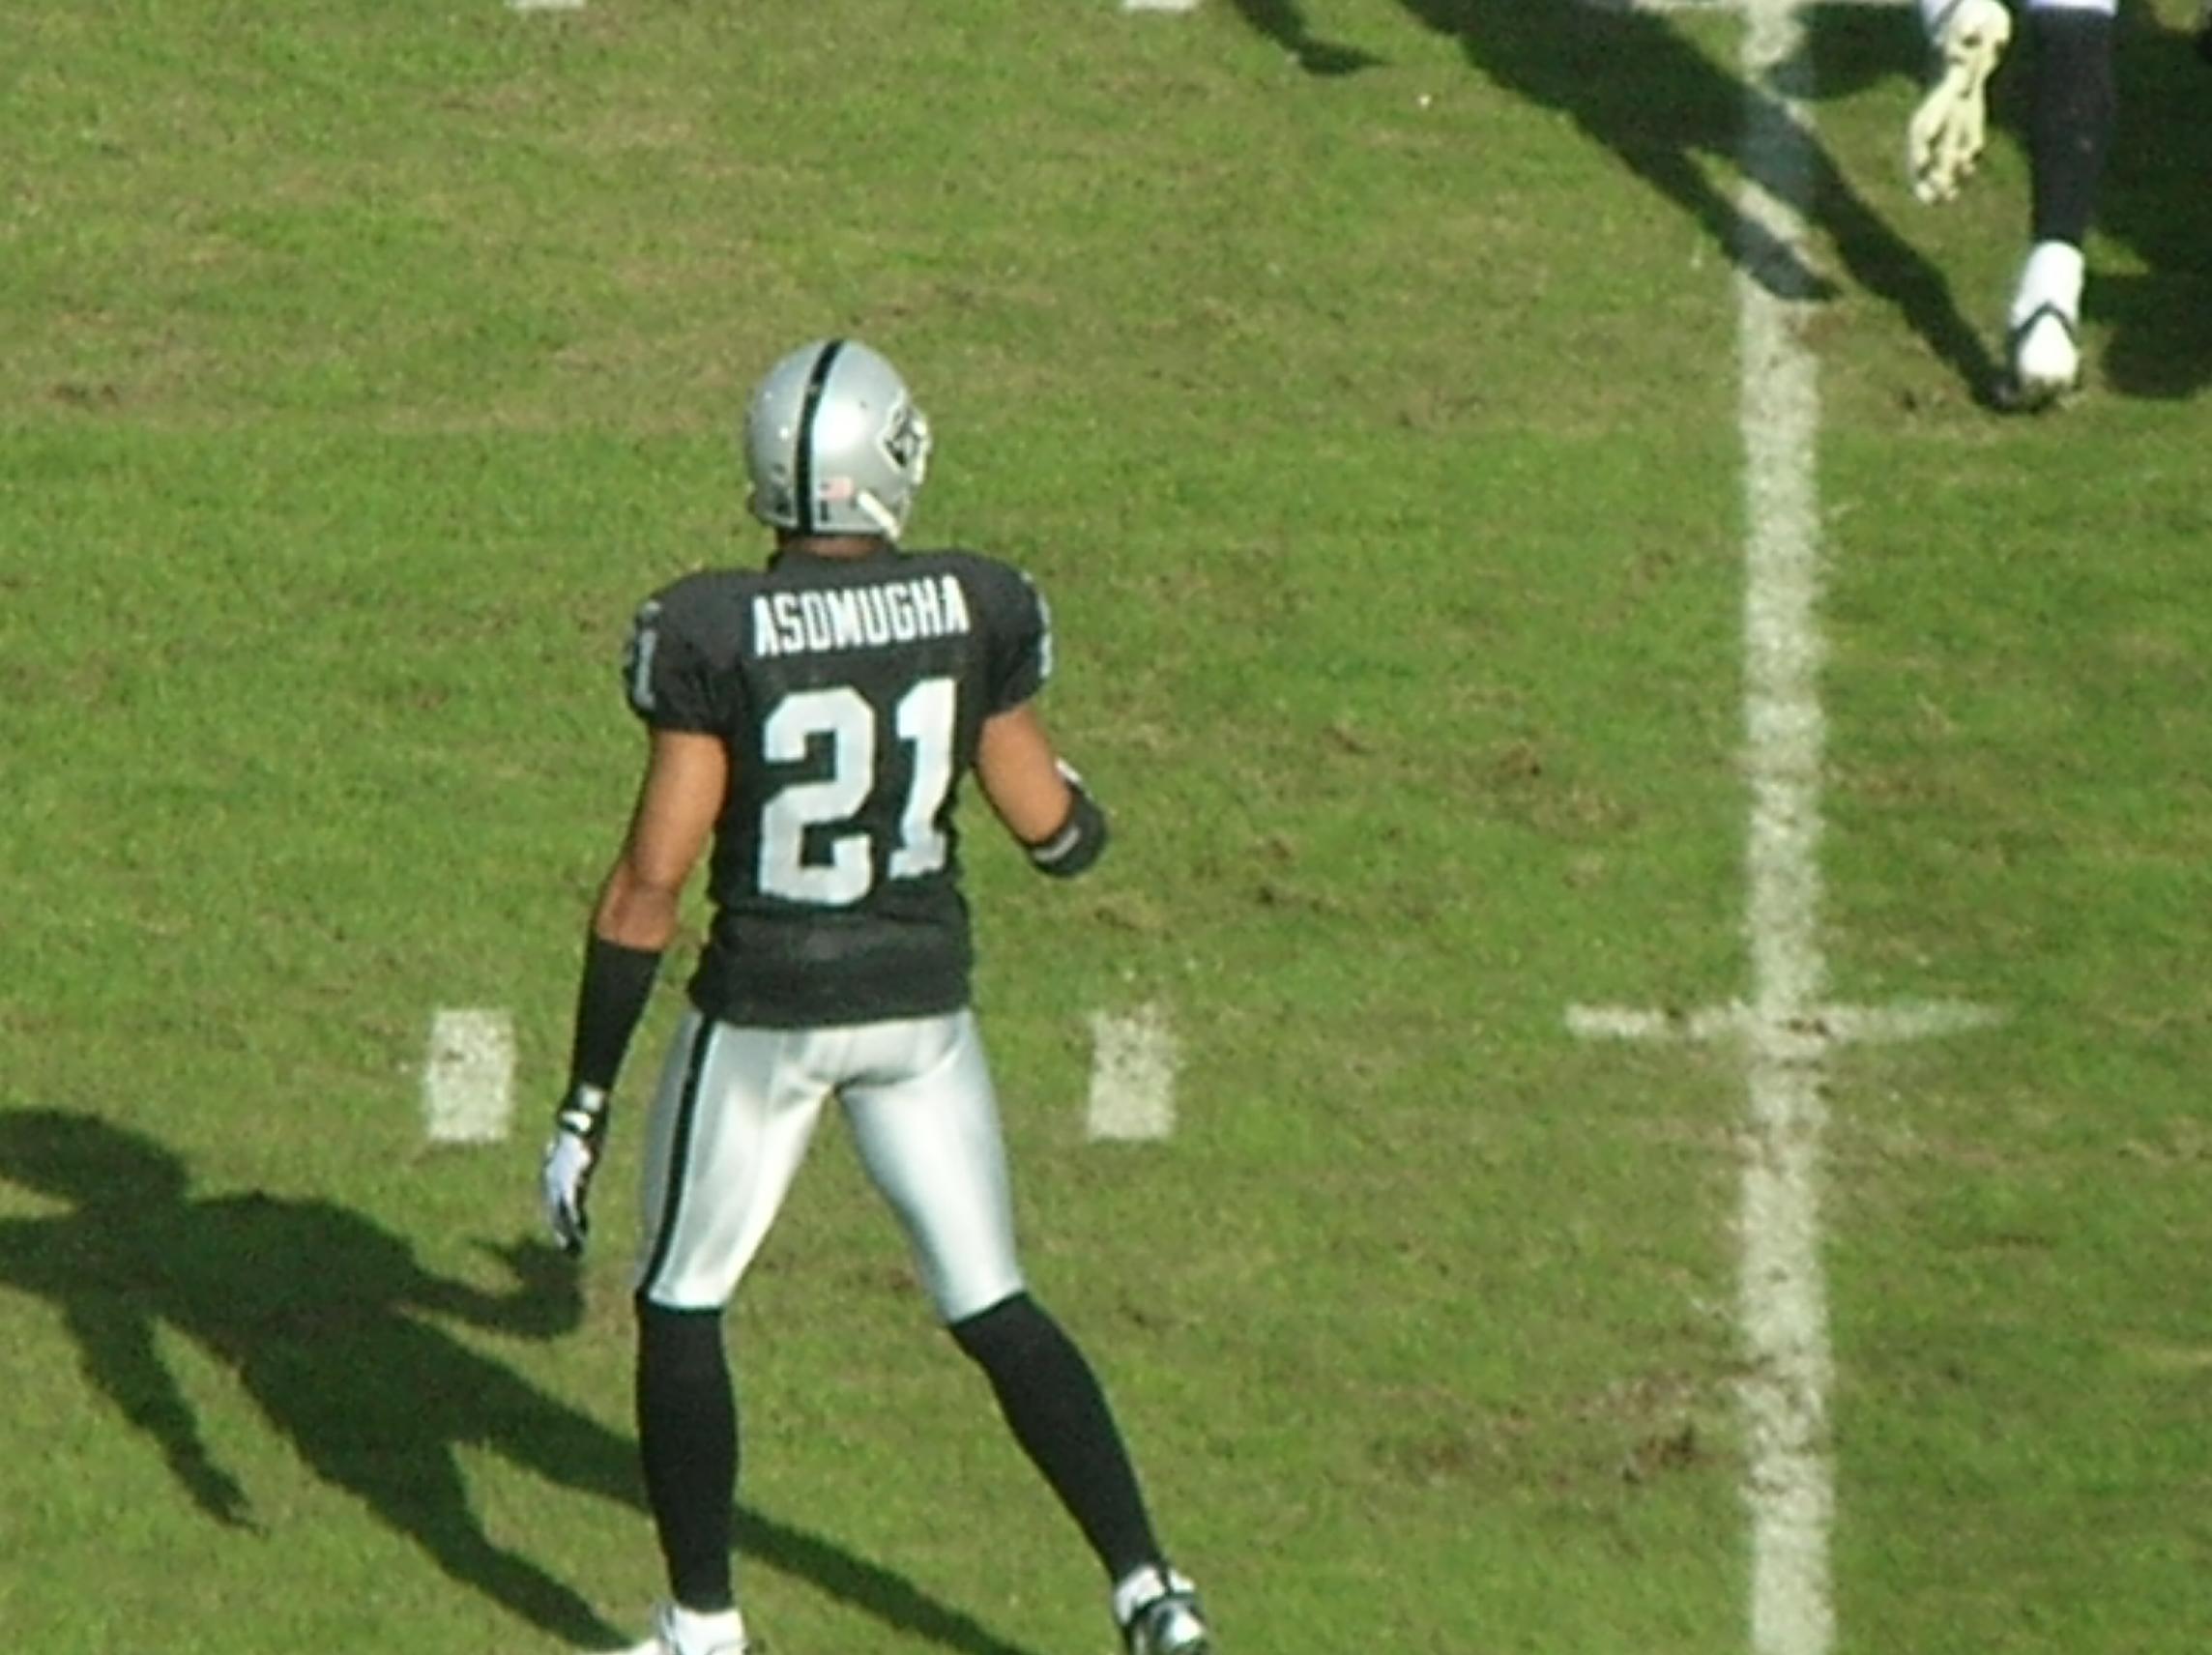 File:Nnamdi Asomugha at Falcons at Raiders 11-2-08 2.JPG - Wikimedia ...